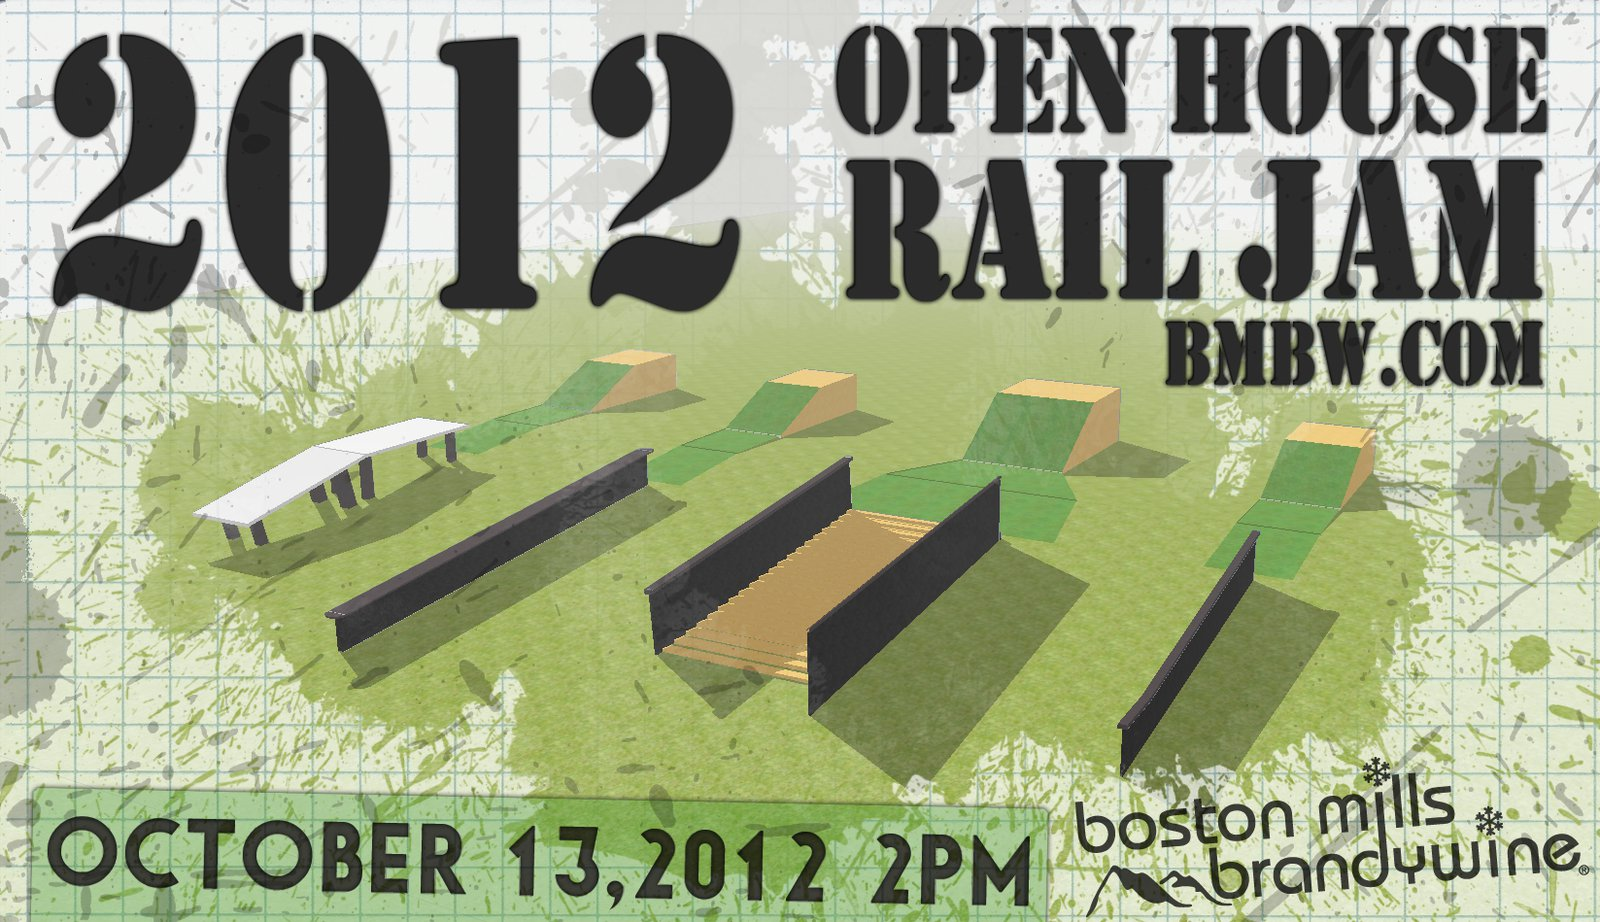 2012 BMBW Open House Rail Jam